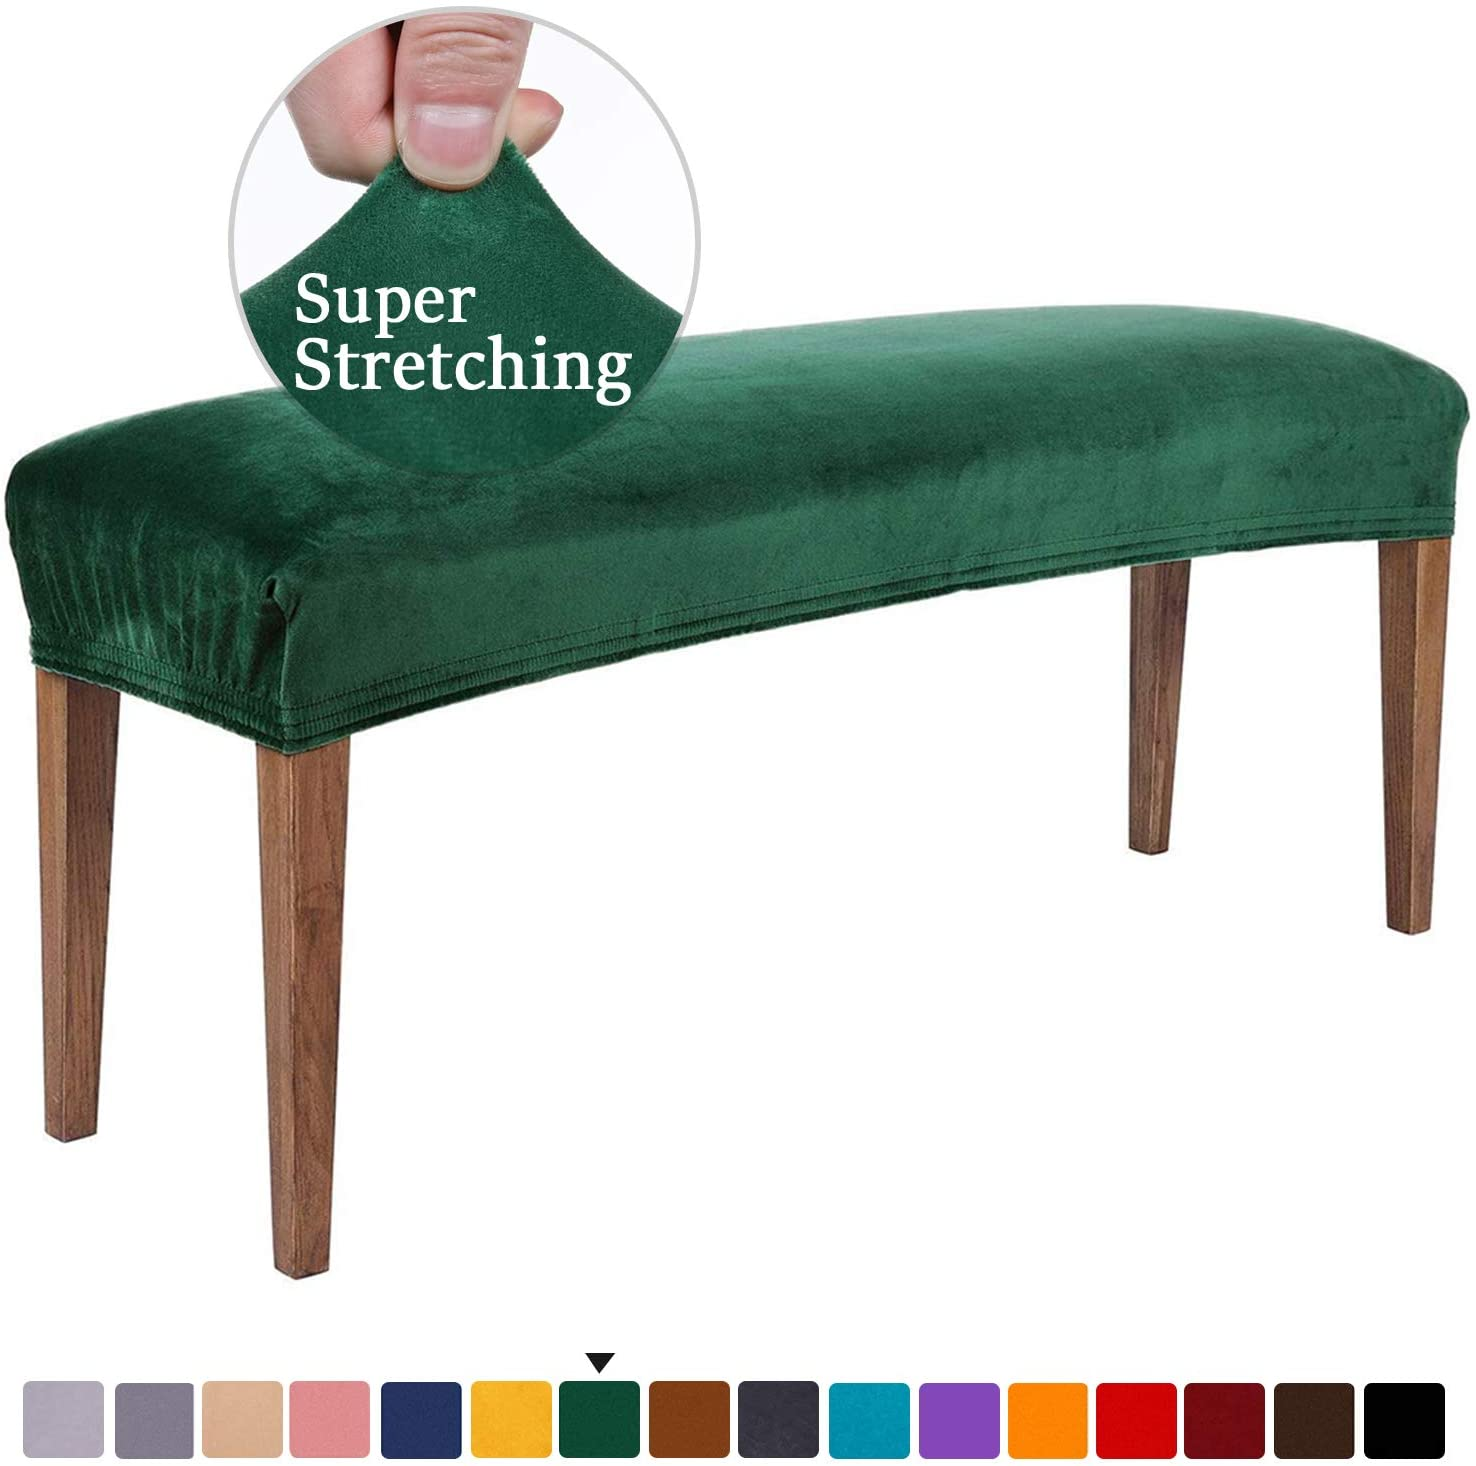 smiry Velvet Dining Room Bench Covers - Soft Stretch Spandex Upholstered Bench Slipcover Removable Washable Bench Seat Protector for Living Room, Kitchen, Bedroom (Dark Green)